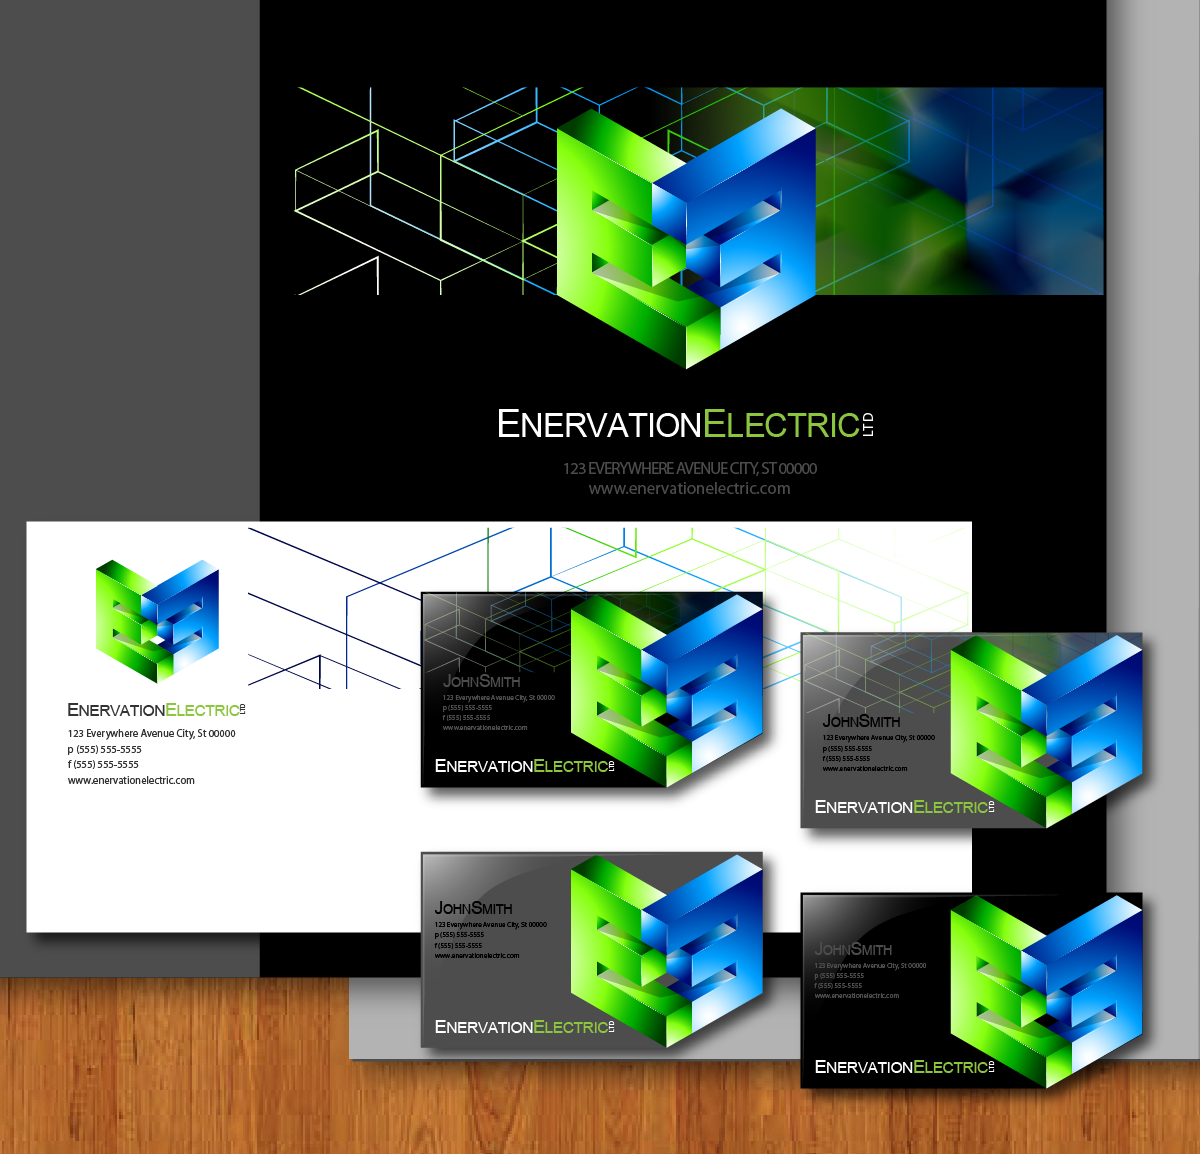 Business Card Design by zesthar - Entry No. 161 in the Business Card Design Contest Enervation Logo Design.